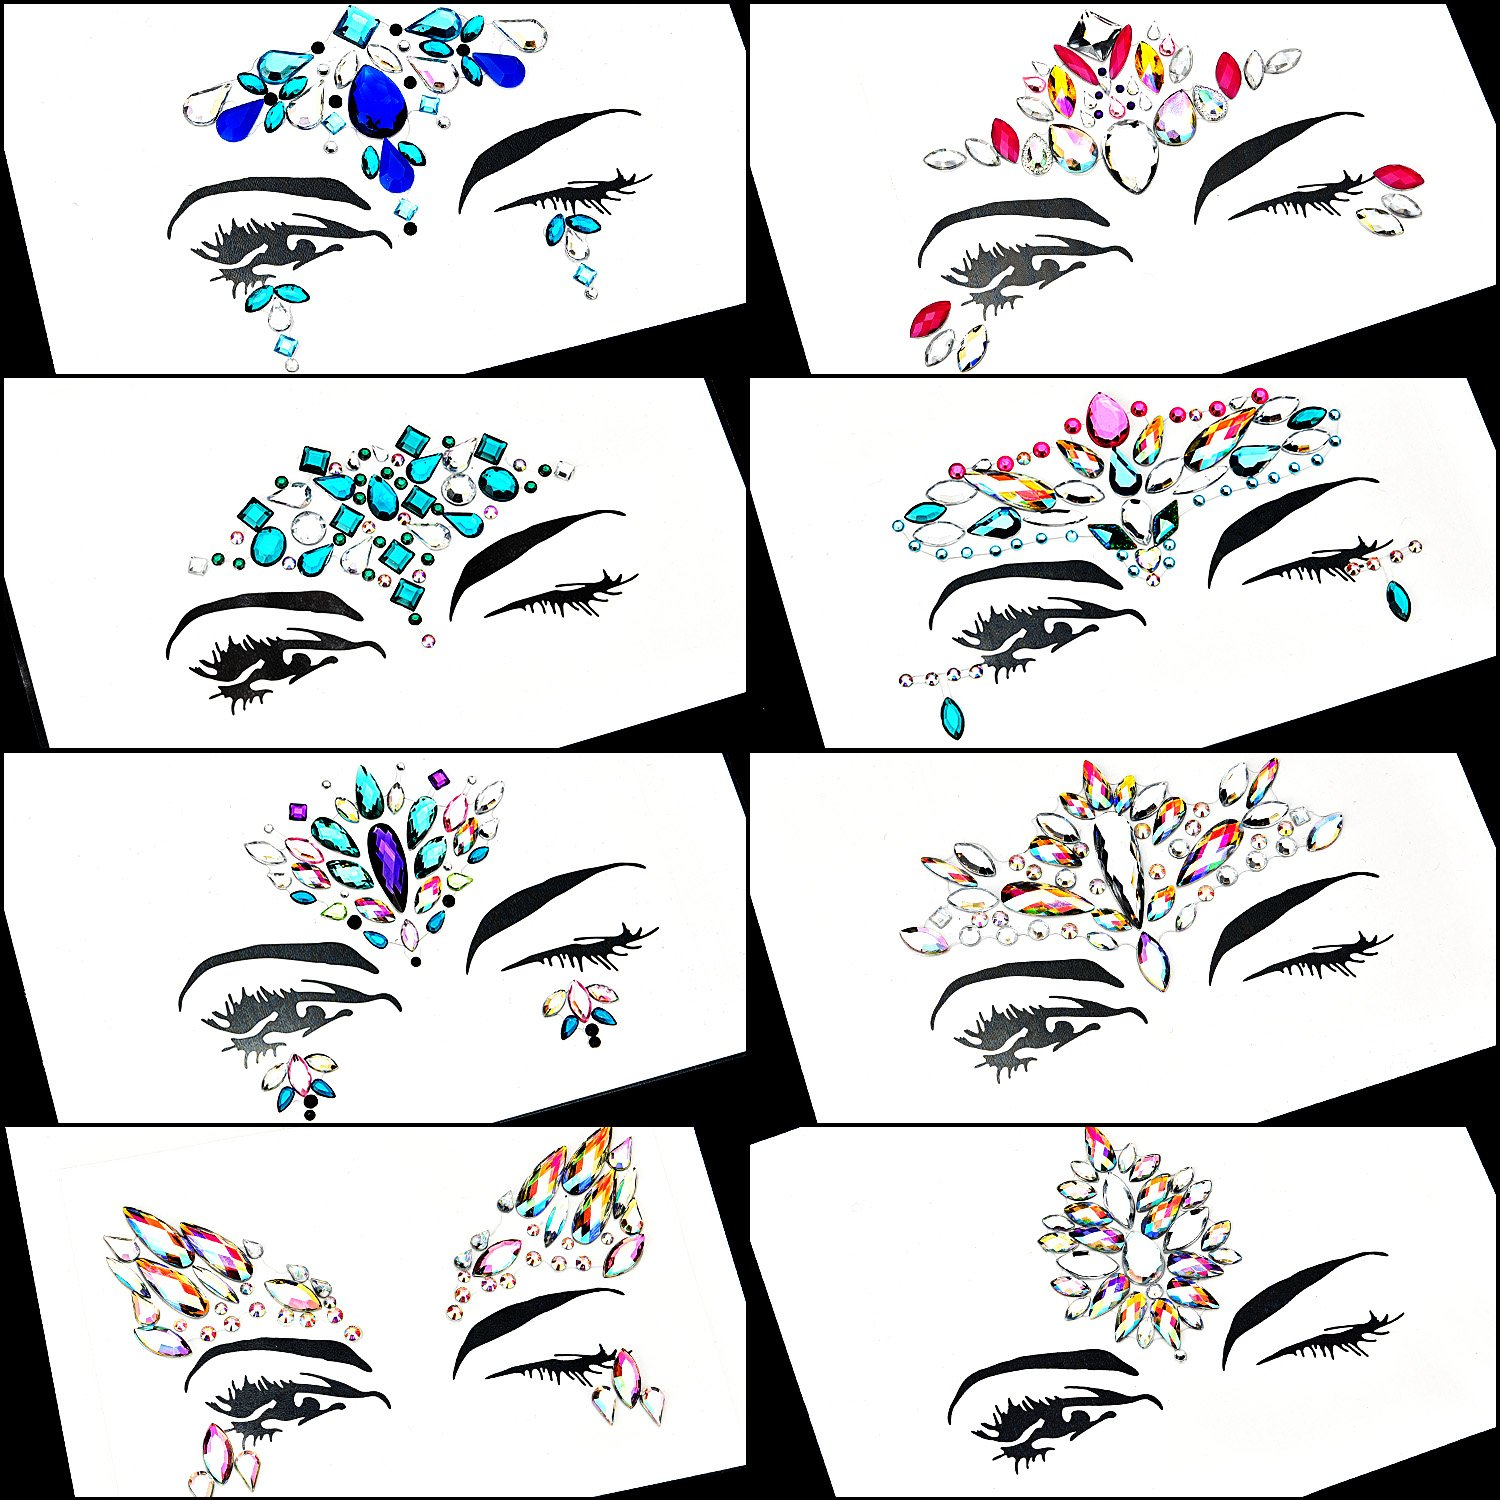 TOODOO 8 Sets Face Gems Rhinestone Colorful Sticker Tattoo Jewelry Stick on Face Festival Jewels for Forehead Body Decorations (Style 1) by TOODOO (Image #2)